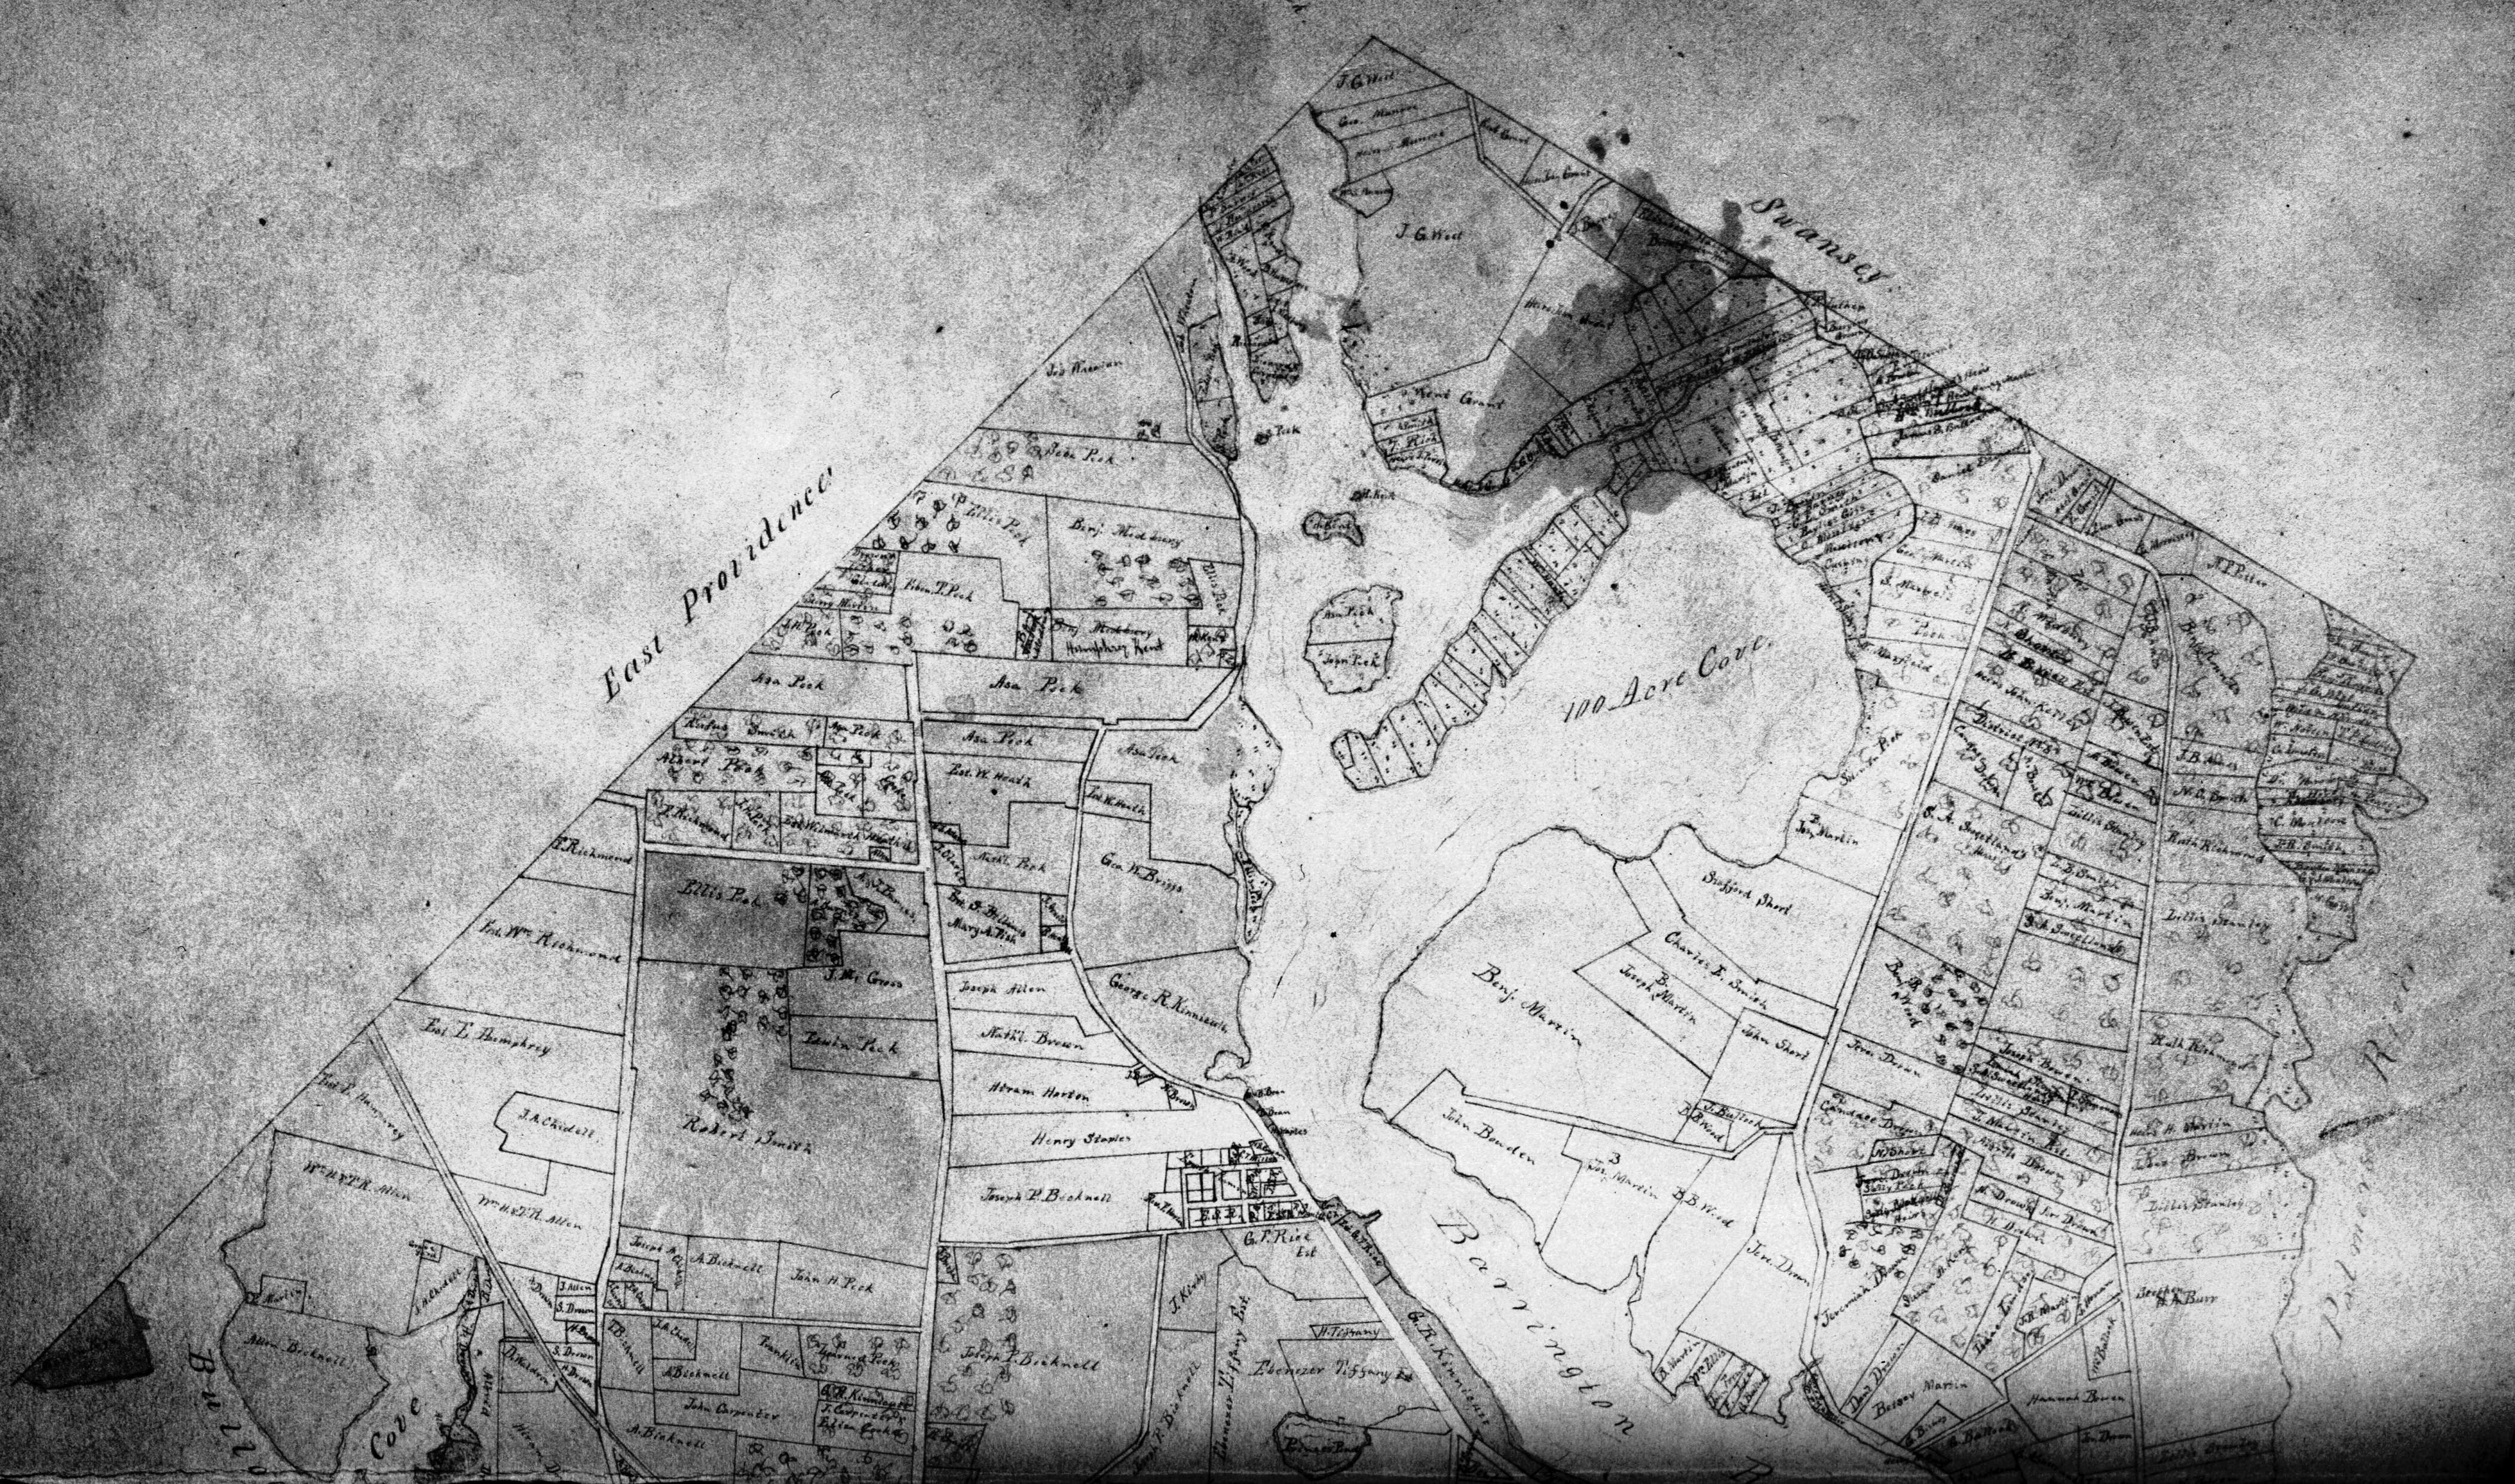 a genealogist's sketchbook › a new old map of Barrington on map of west warwick ri, map of wakefield ri, map of cranston ri, map of american fork ut, map of ri towns, map of east greenwich ri, map of narragansett bay ri, map of east bay bike path ri, map of pawtucket ri, map of arnoldsburg wv, map of south providence ri, map of browning mt, map of woonsocket ri, map of shannock ri, map of adamsville ri, map of davisville ri, map of spring lake ri, map of south kingstown ri, map of block island ri, map of north kingstown ri,